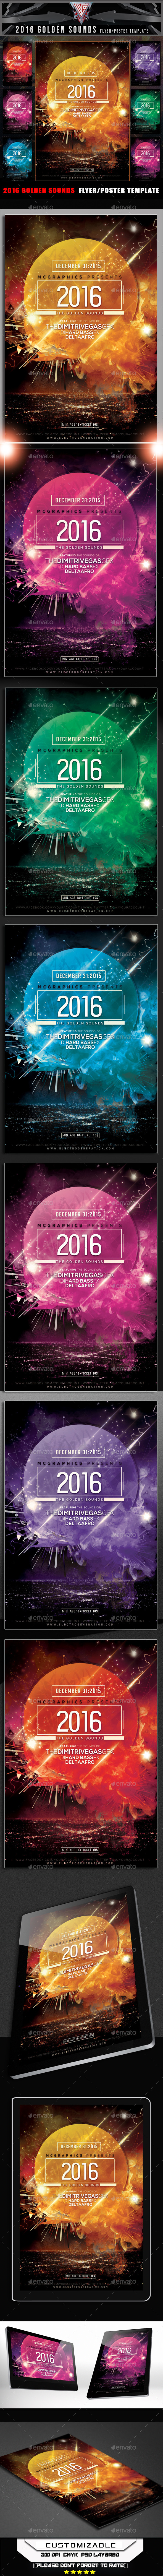 2016 The Golden Sounds Flyer Template - Flyers Print Templates